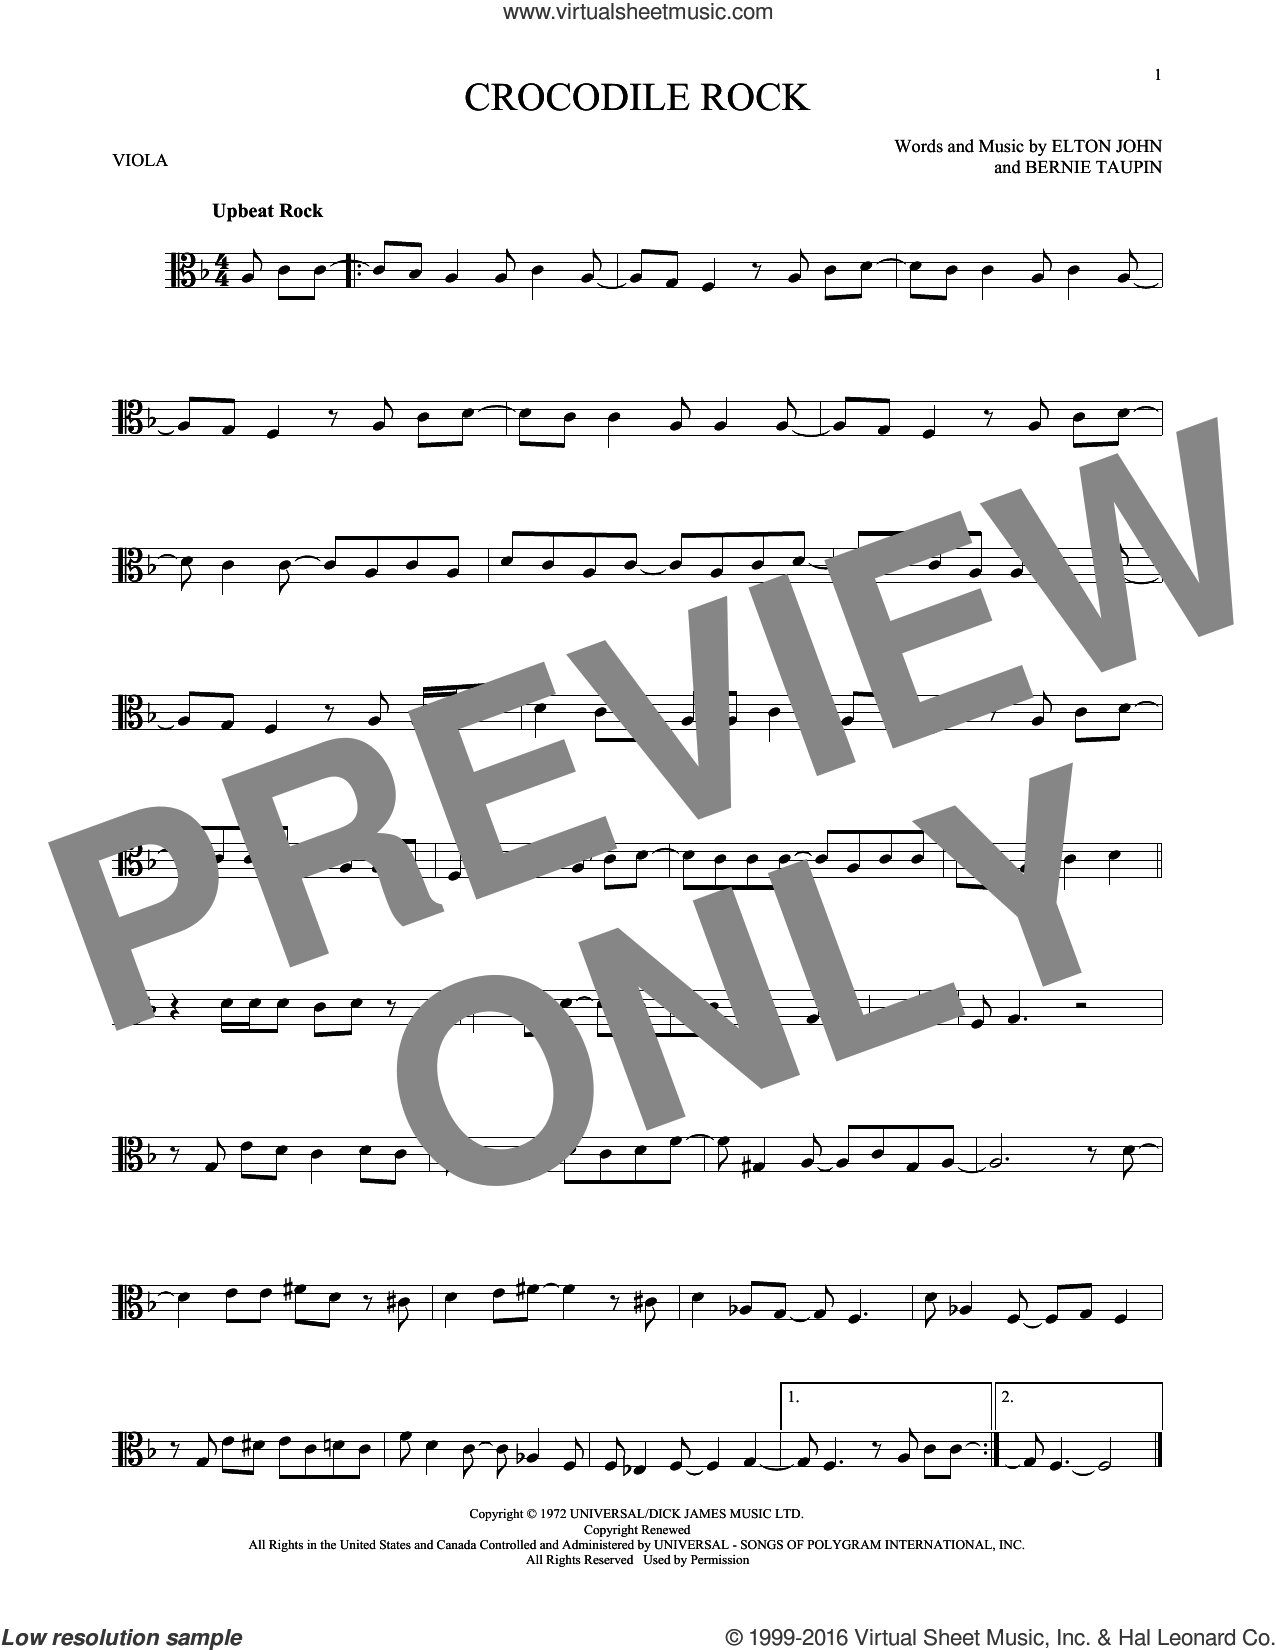 Crocodile Rock sheet music for viola solo by Elton John and Bernie Taupin, intermediate skill level